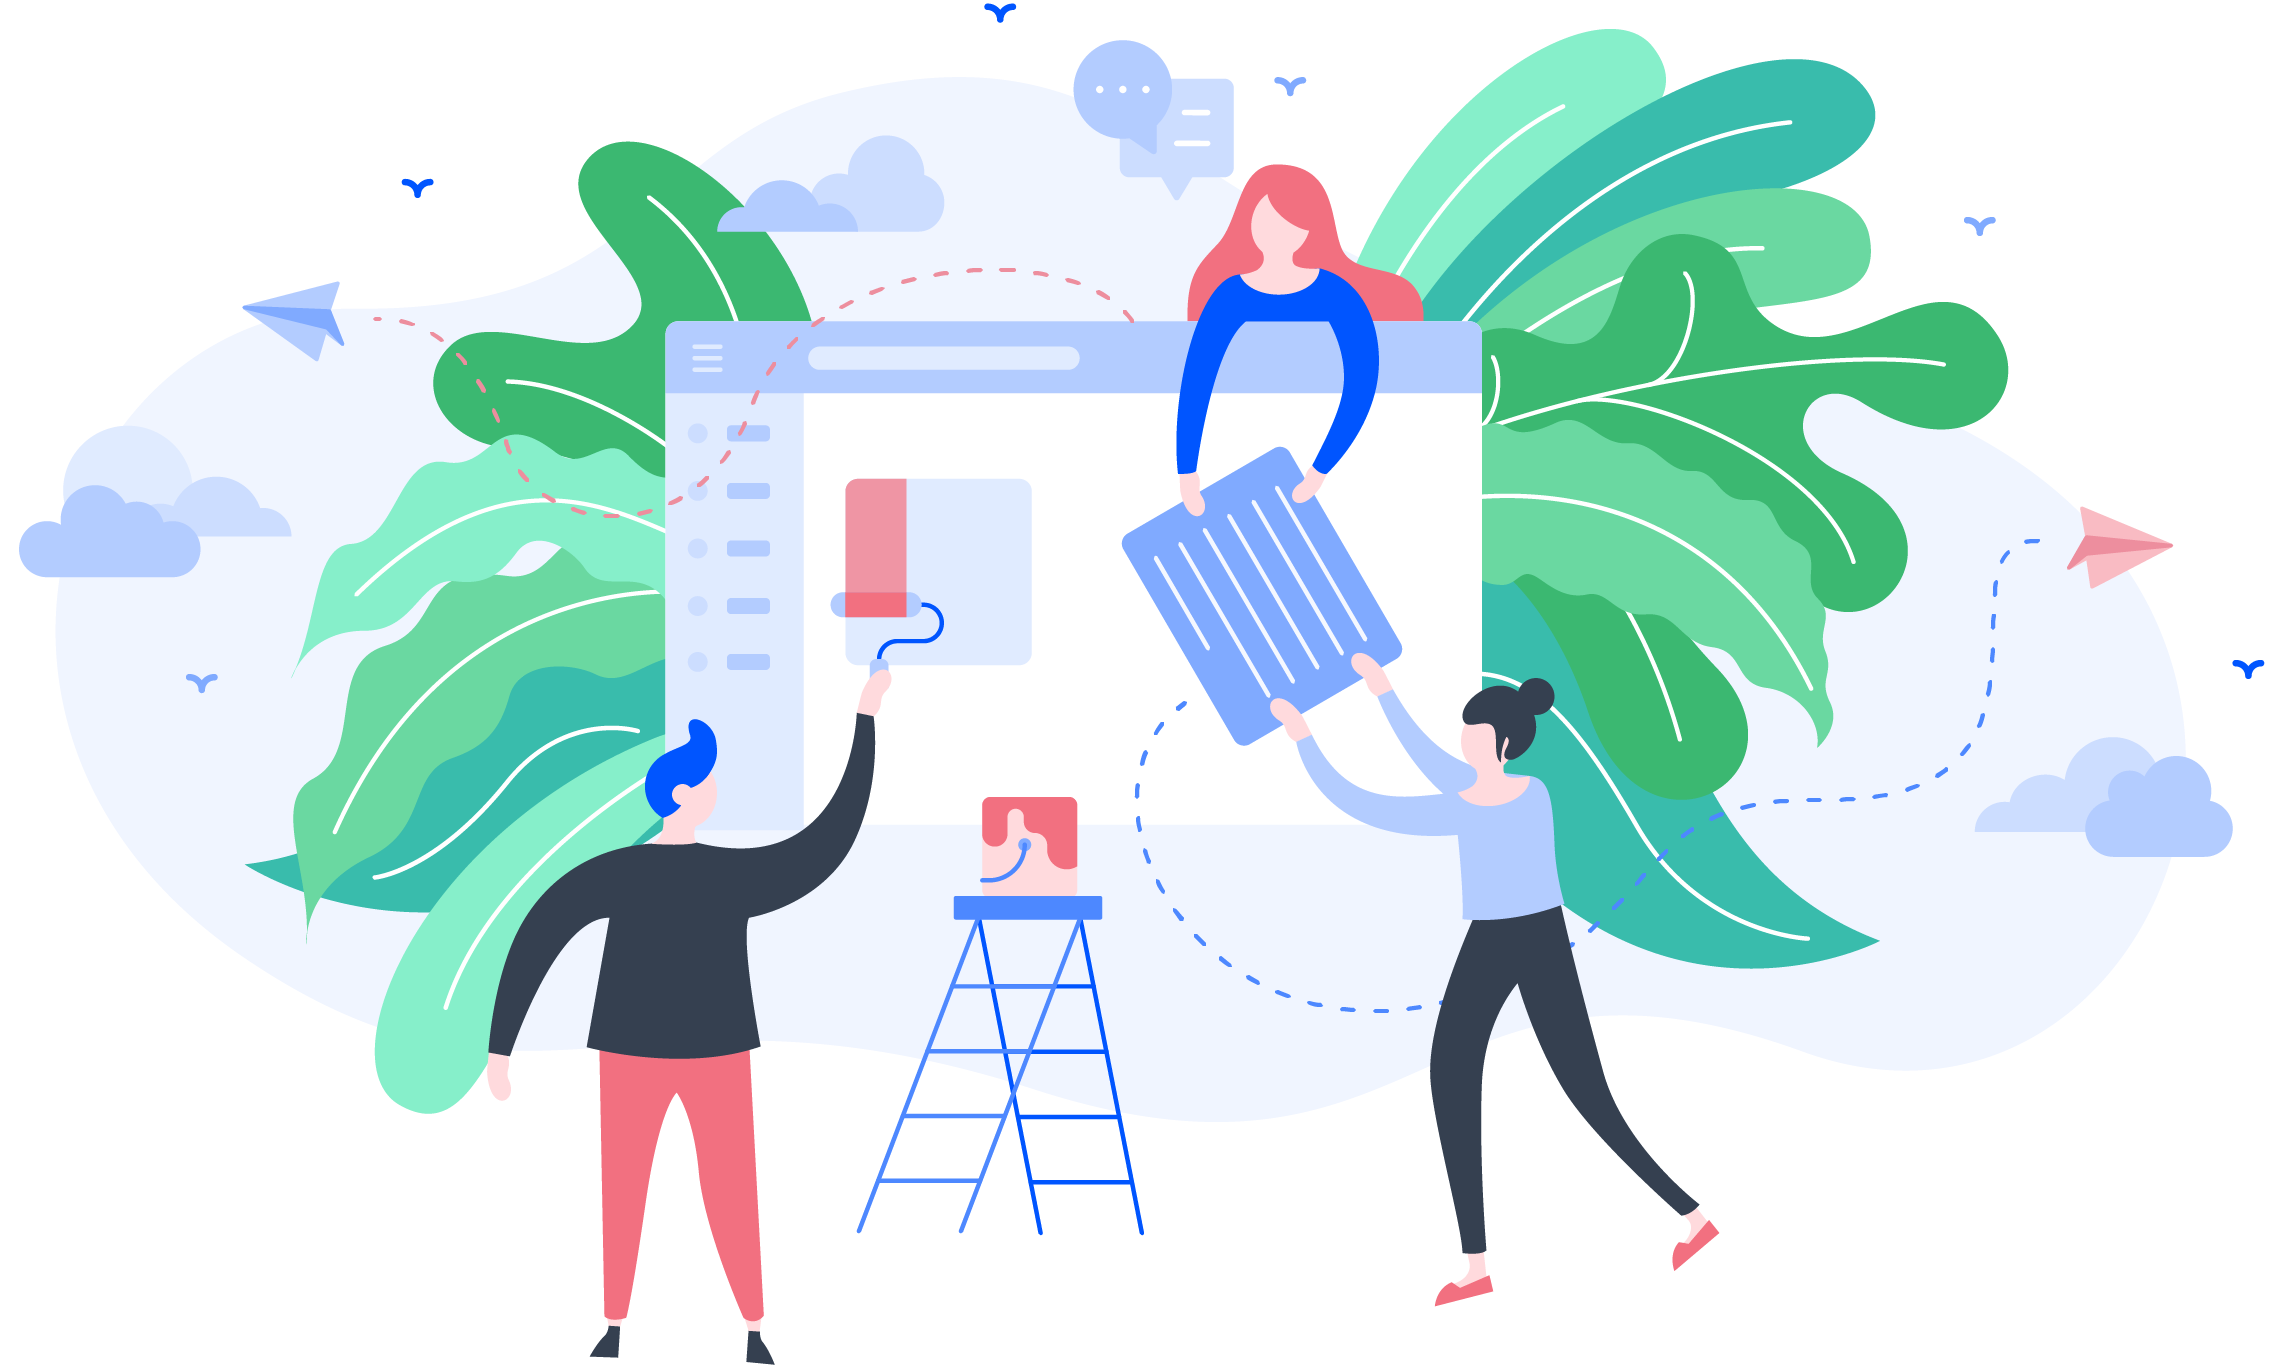 All products_UX Research opt-in programme illustration user feedback learners 500px_23.05.2019_TG_v1